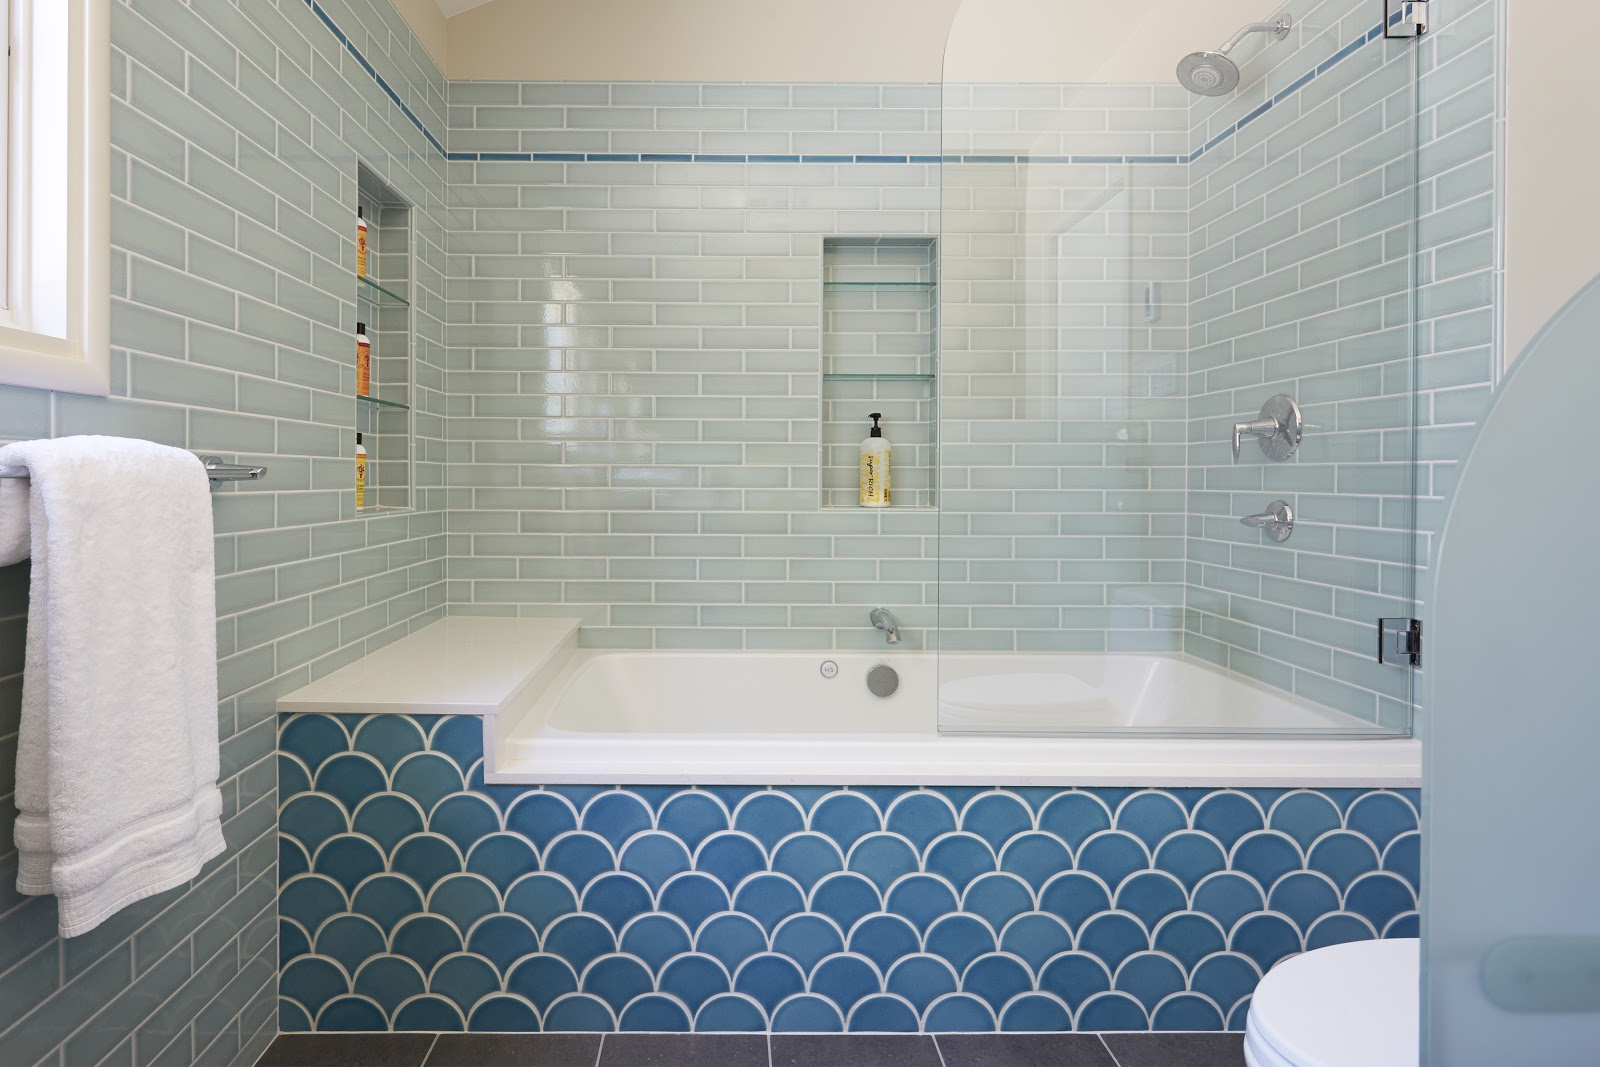 Luxury Bathroom Remodels in the East Bay - Fishscale Fireclay tile - Bathroom - Custom Kitchens